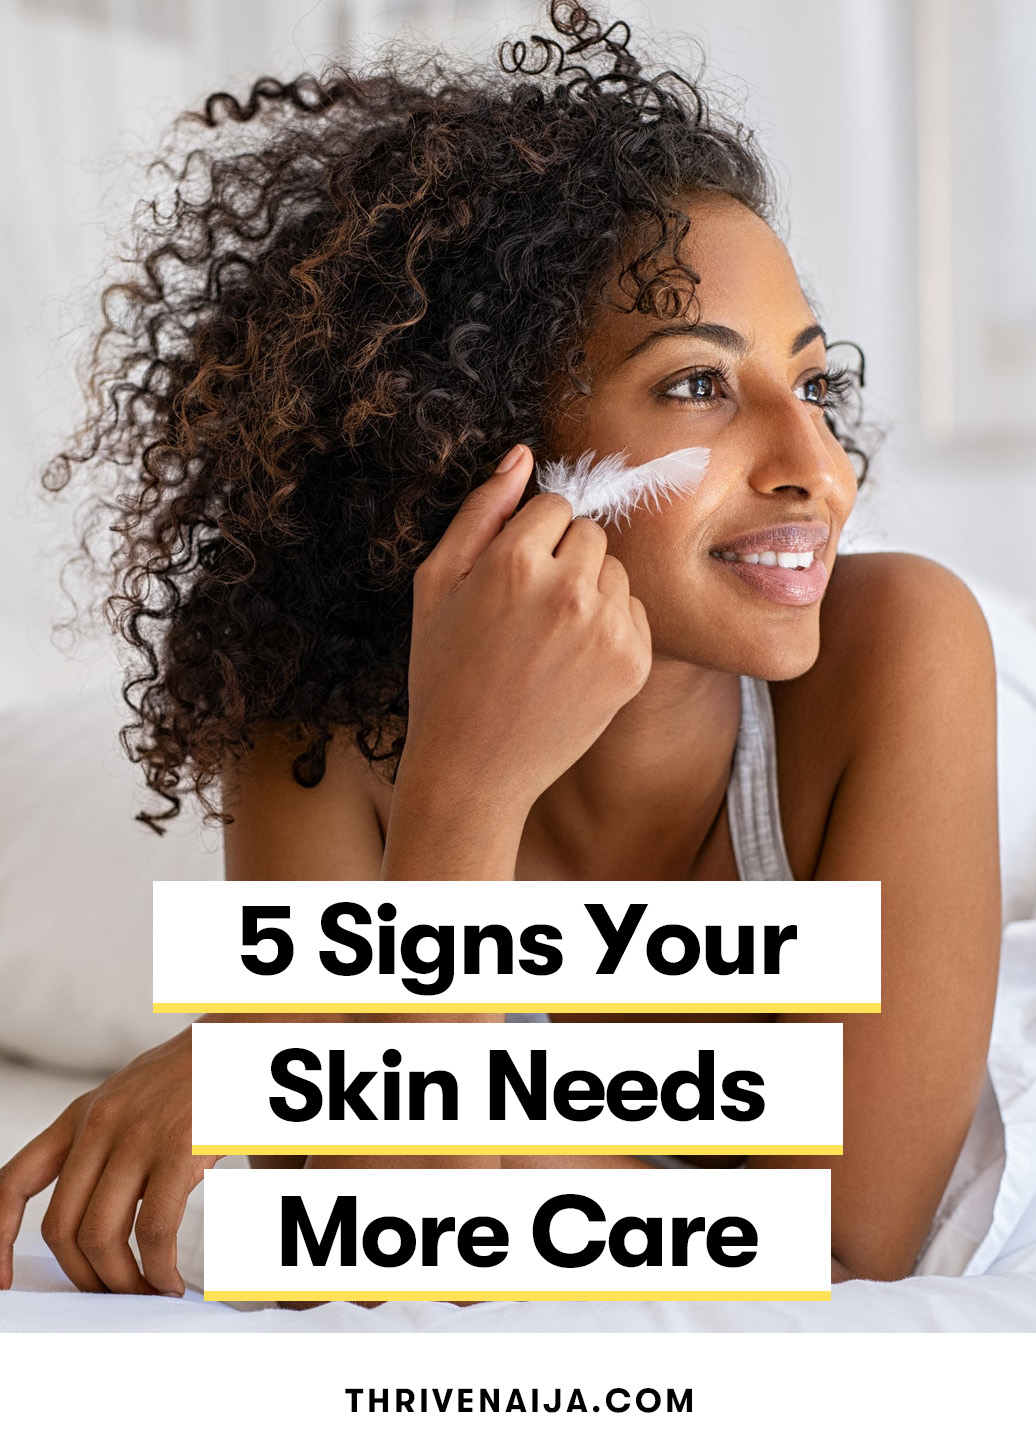 5 Signs Your Skin Needs More Care